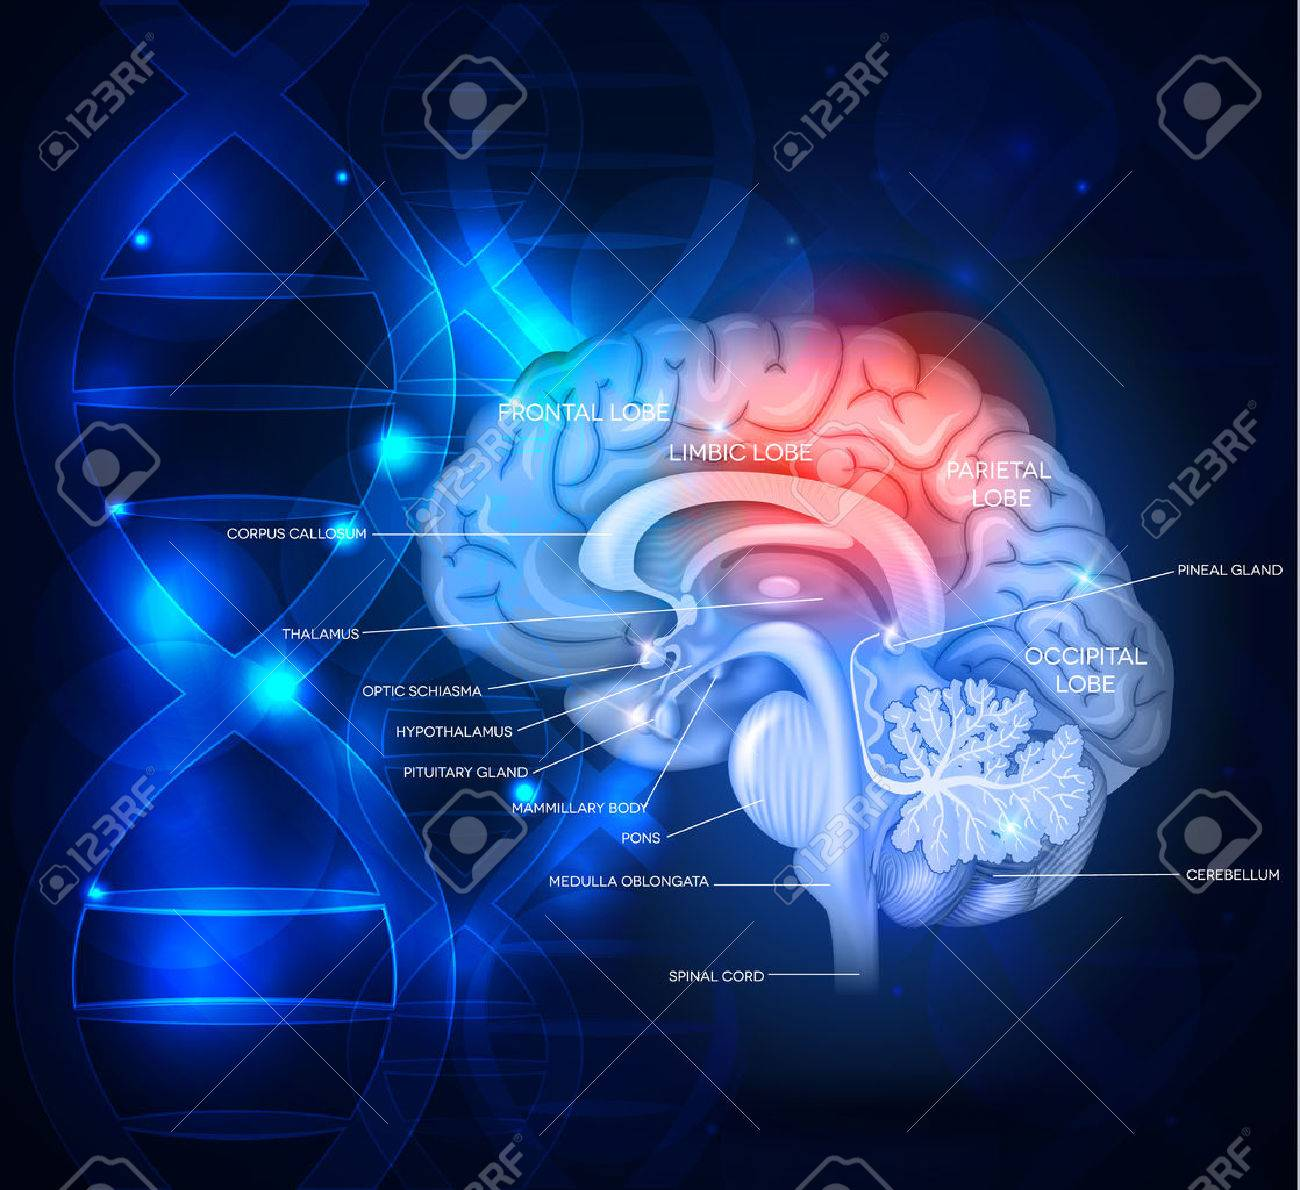 Human brain abstract scientific design with DNA chain, beautiful bright deep blue color Banque d'images - 58392671